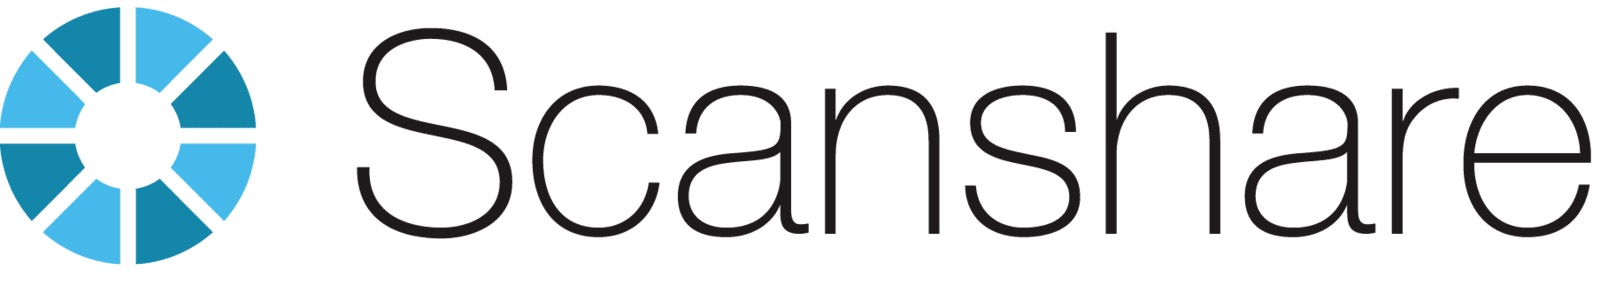 Scanshare digitization